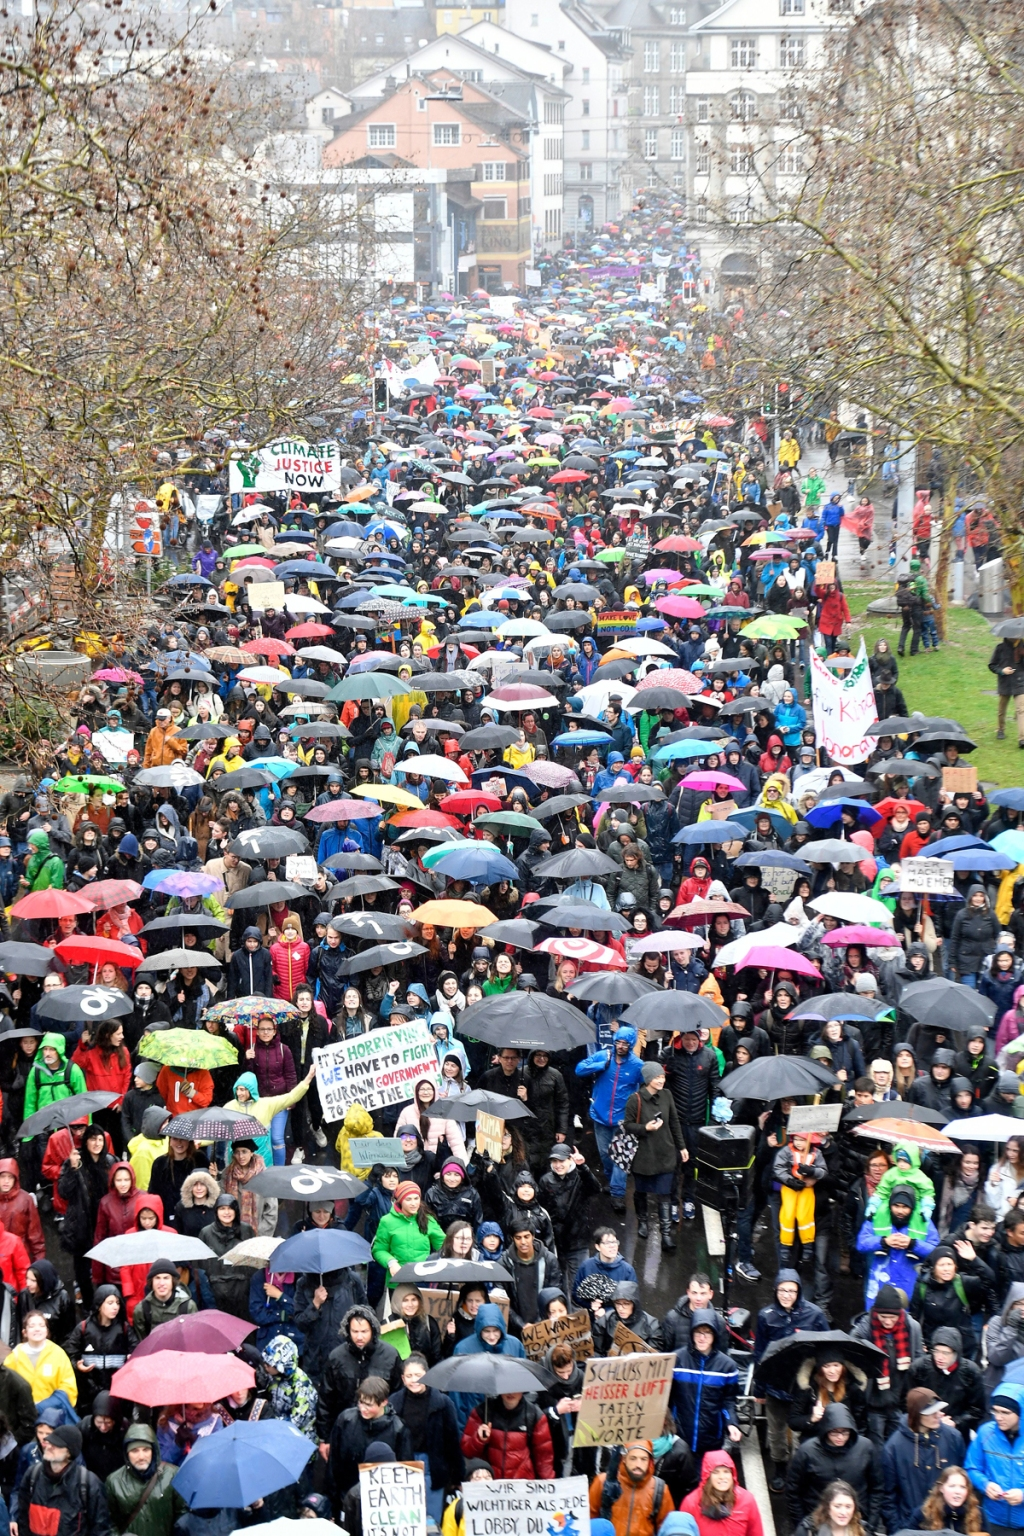 ZURICH, SWITZERLAND: The rain didn't stop thousands of protestors from taking to the streets in Zurich on Friday.